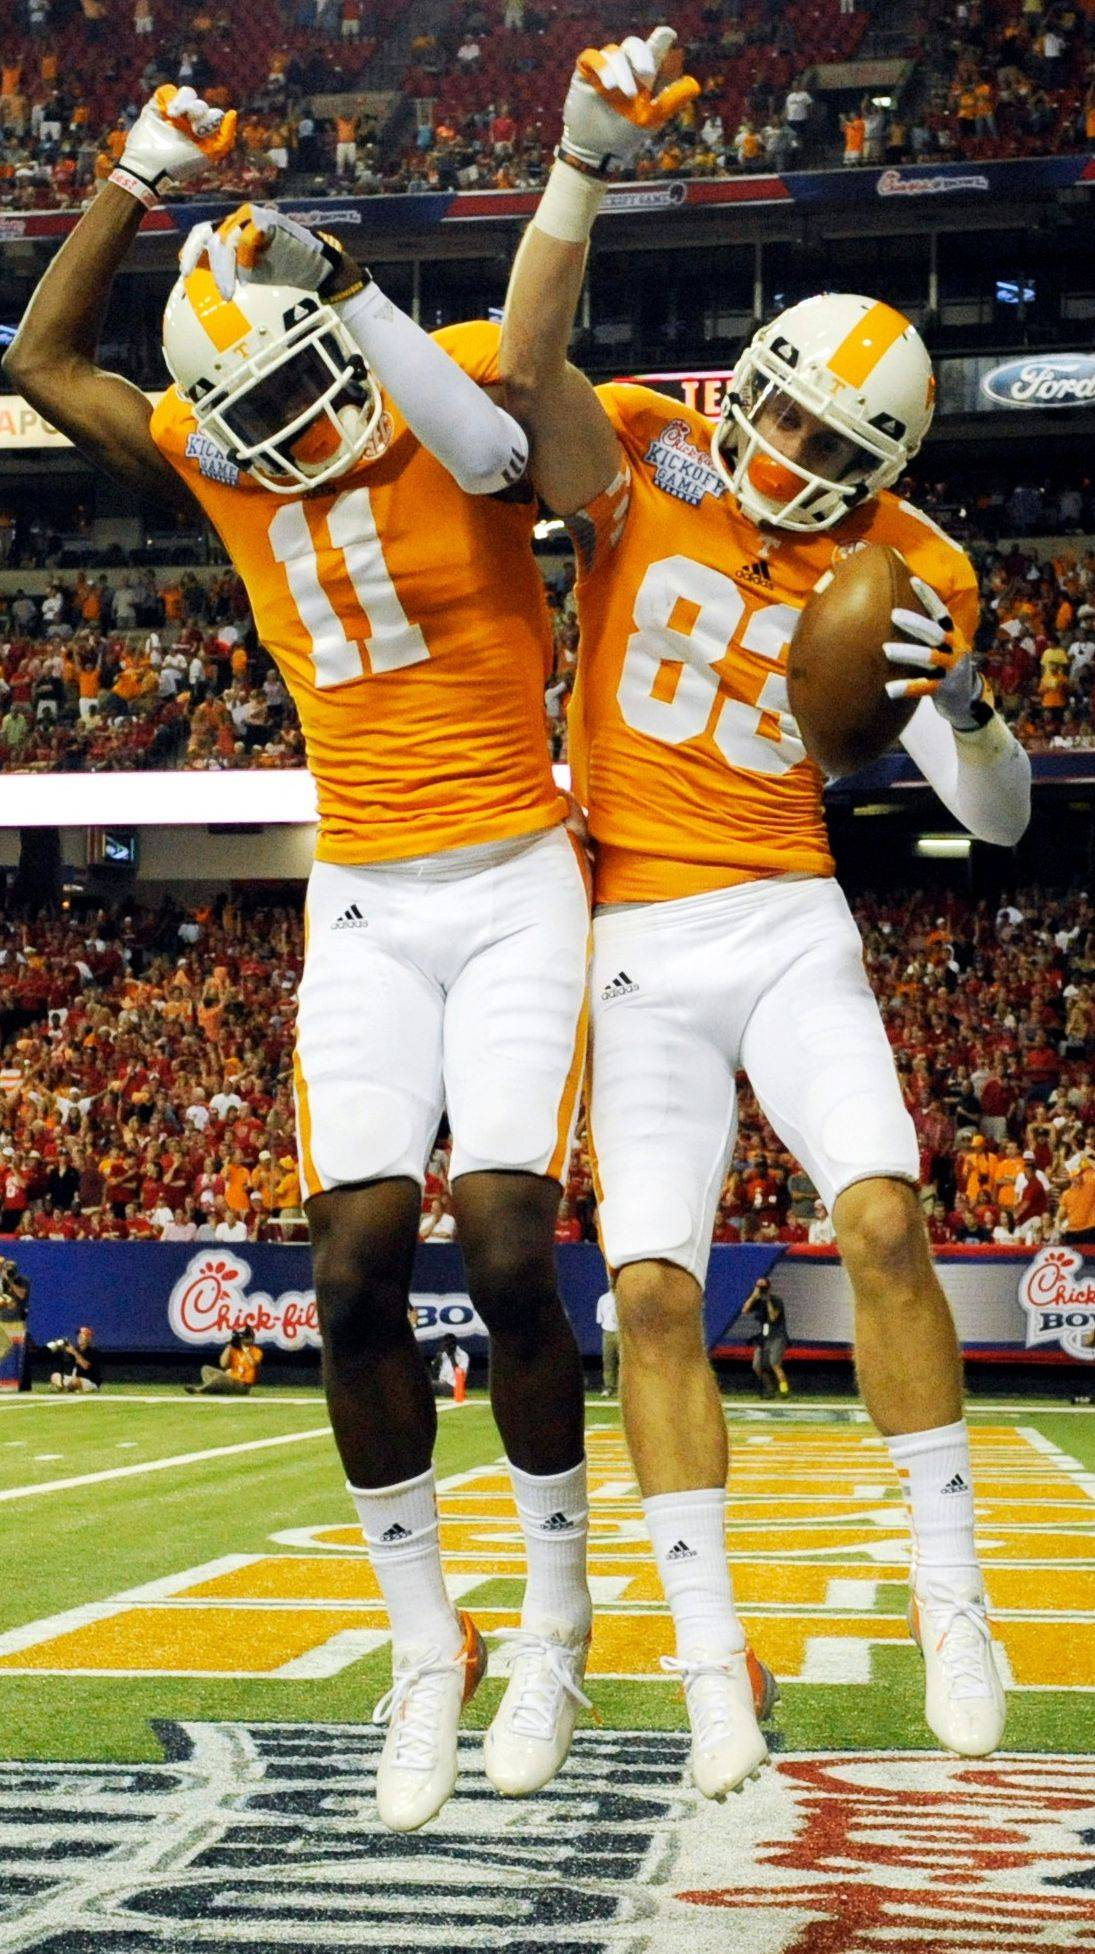 Tennessee�s Justin Hunter (11) caught 73 passes last season for 1,083 yards and 9 TDs. He may be the first wide receiver taken in the NFL draft later this month.